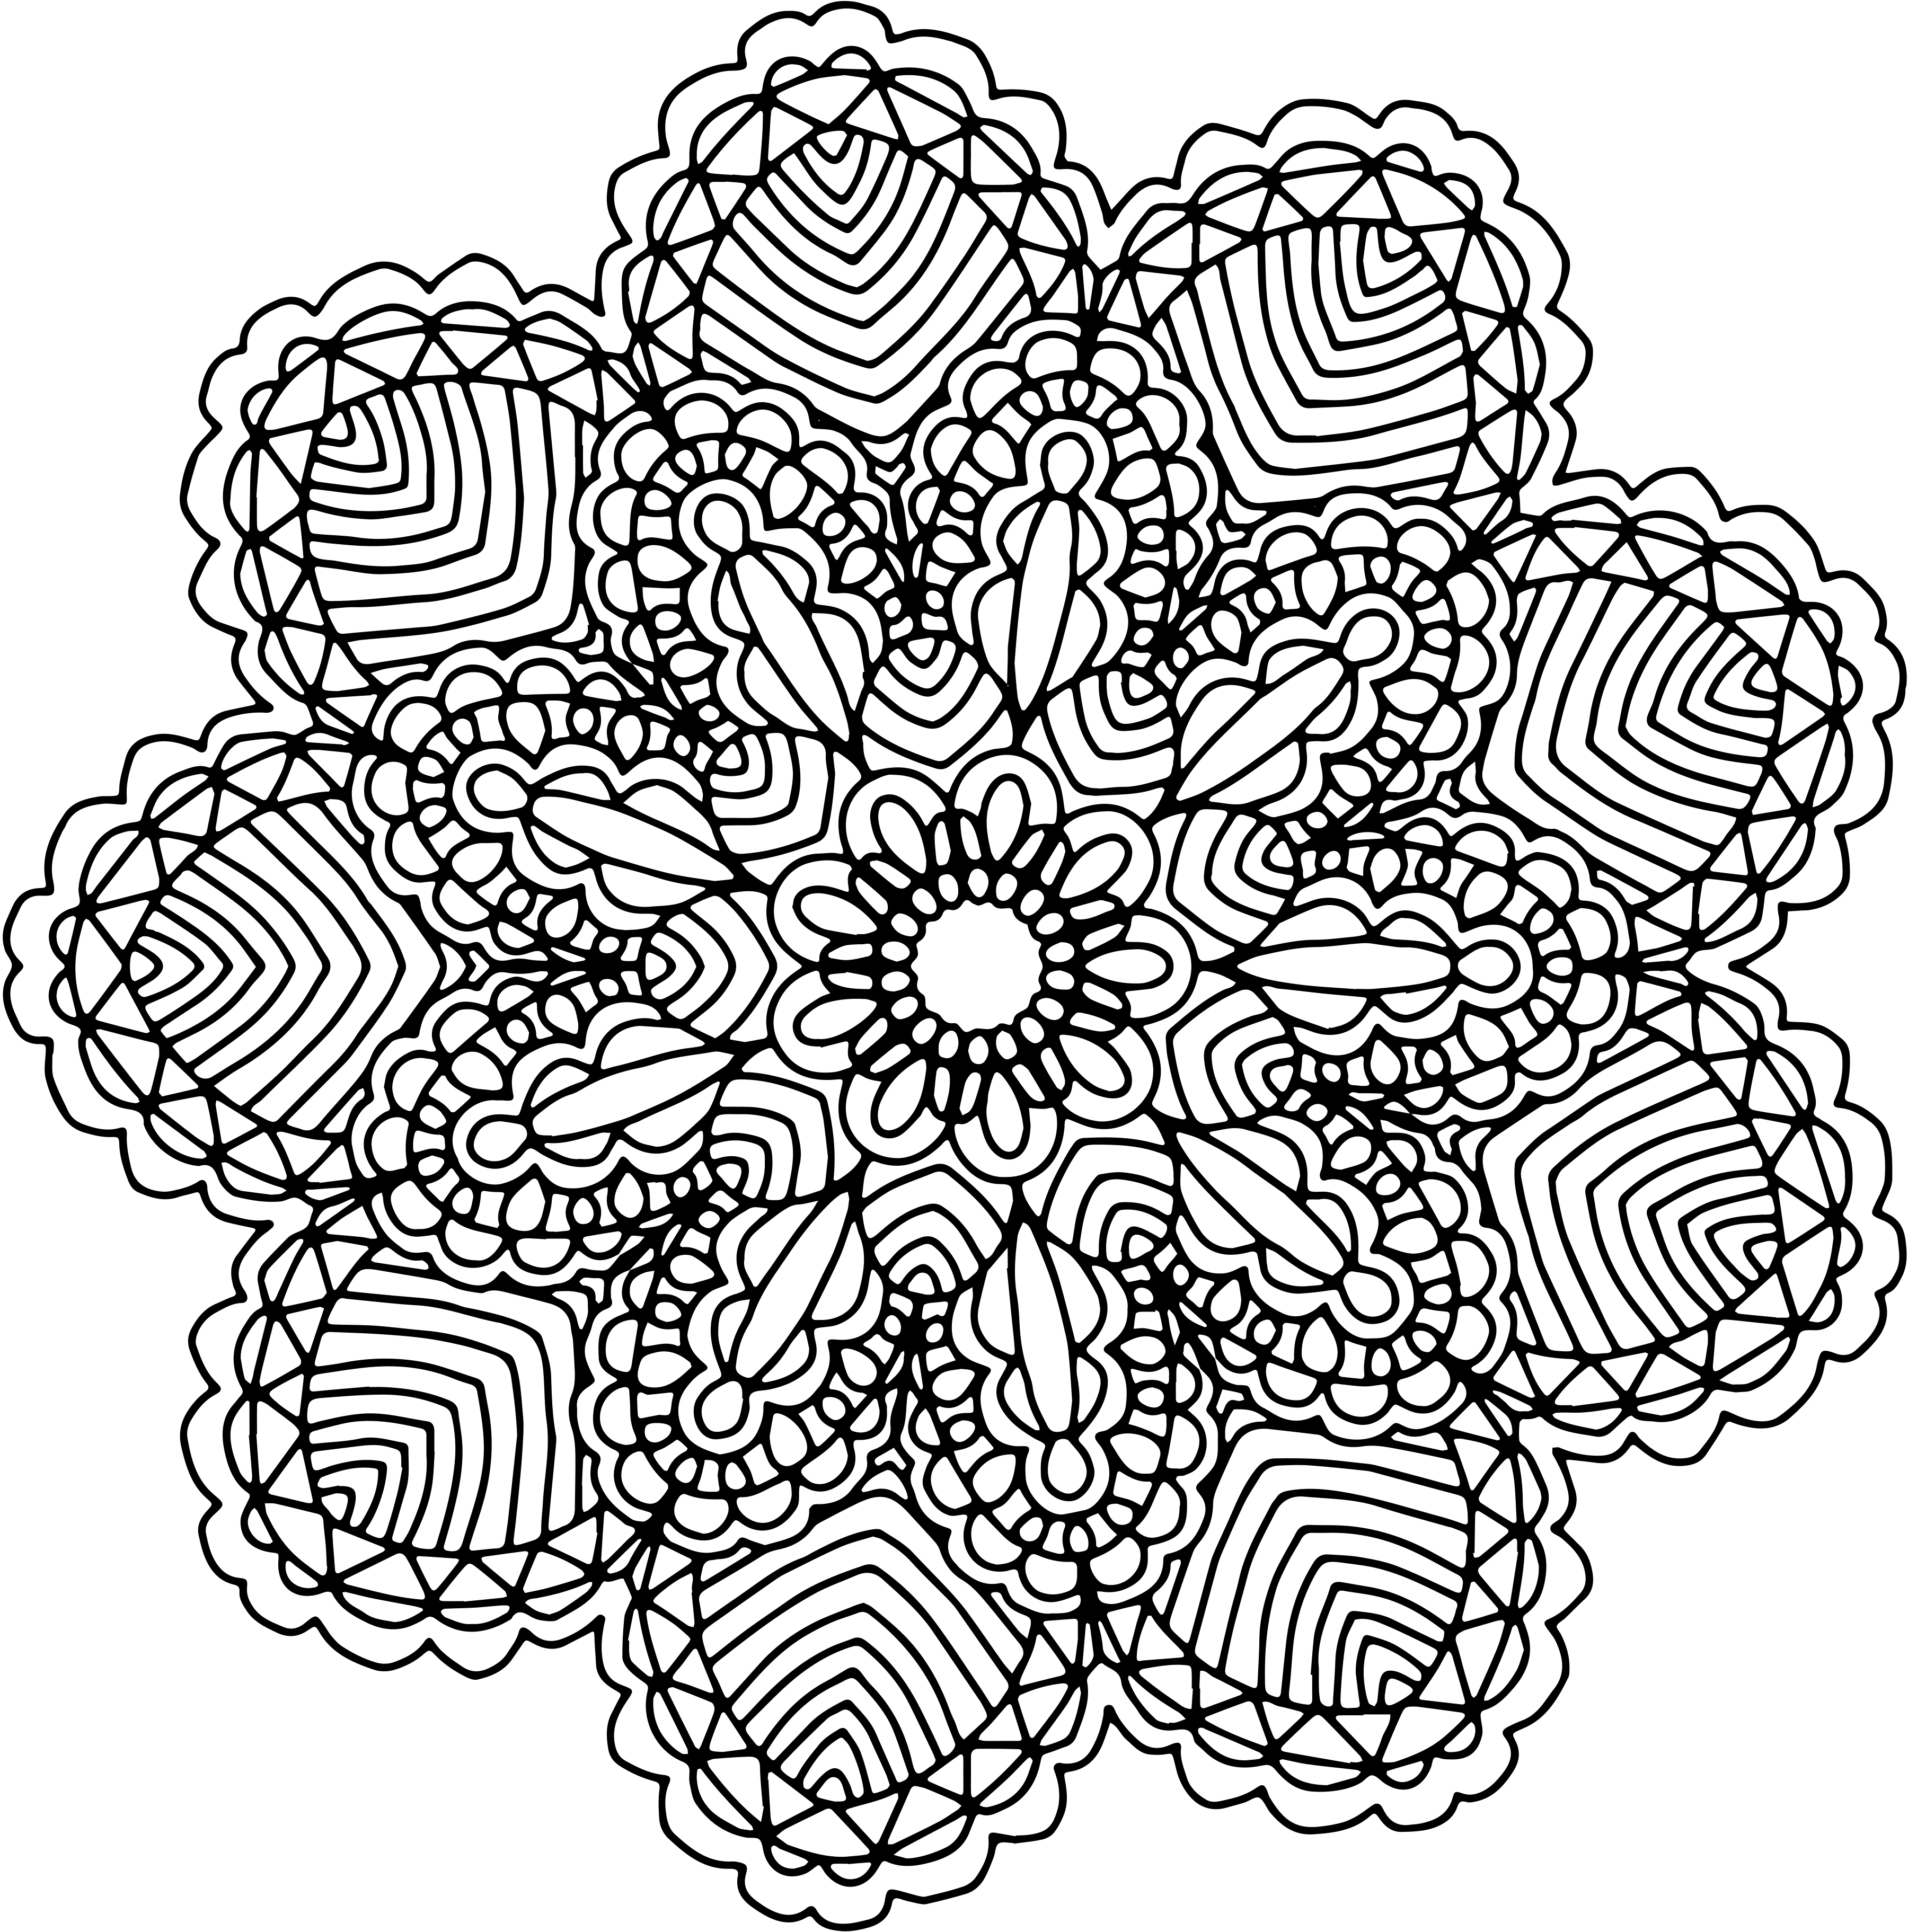 Drawing mandala black and white. Free graphics two hand